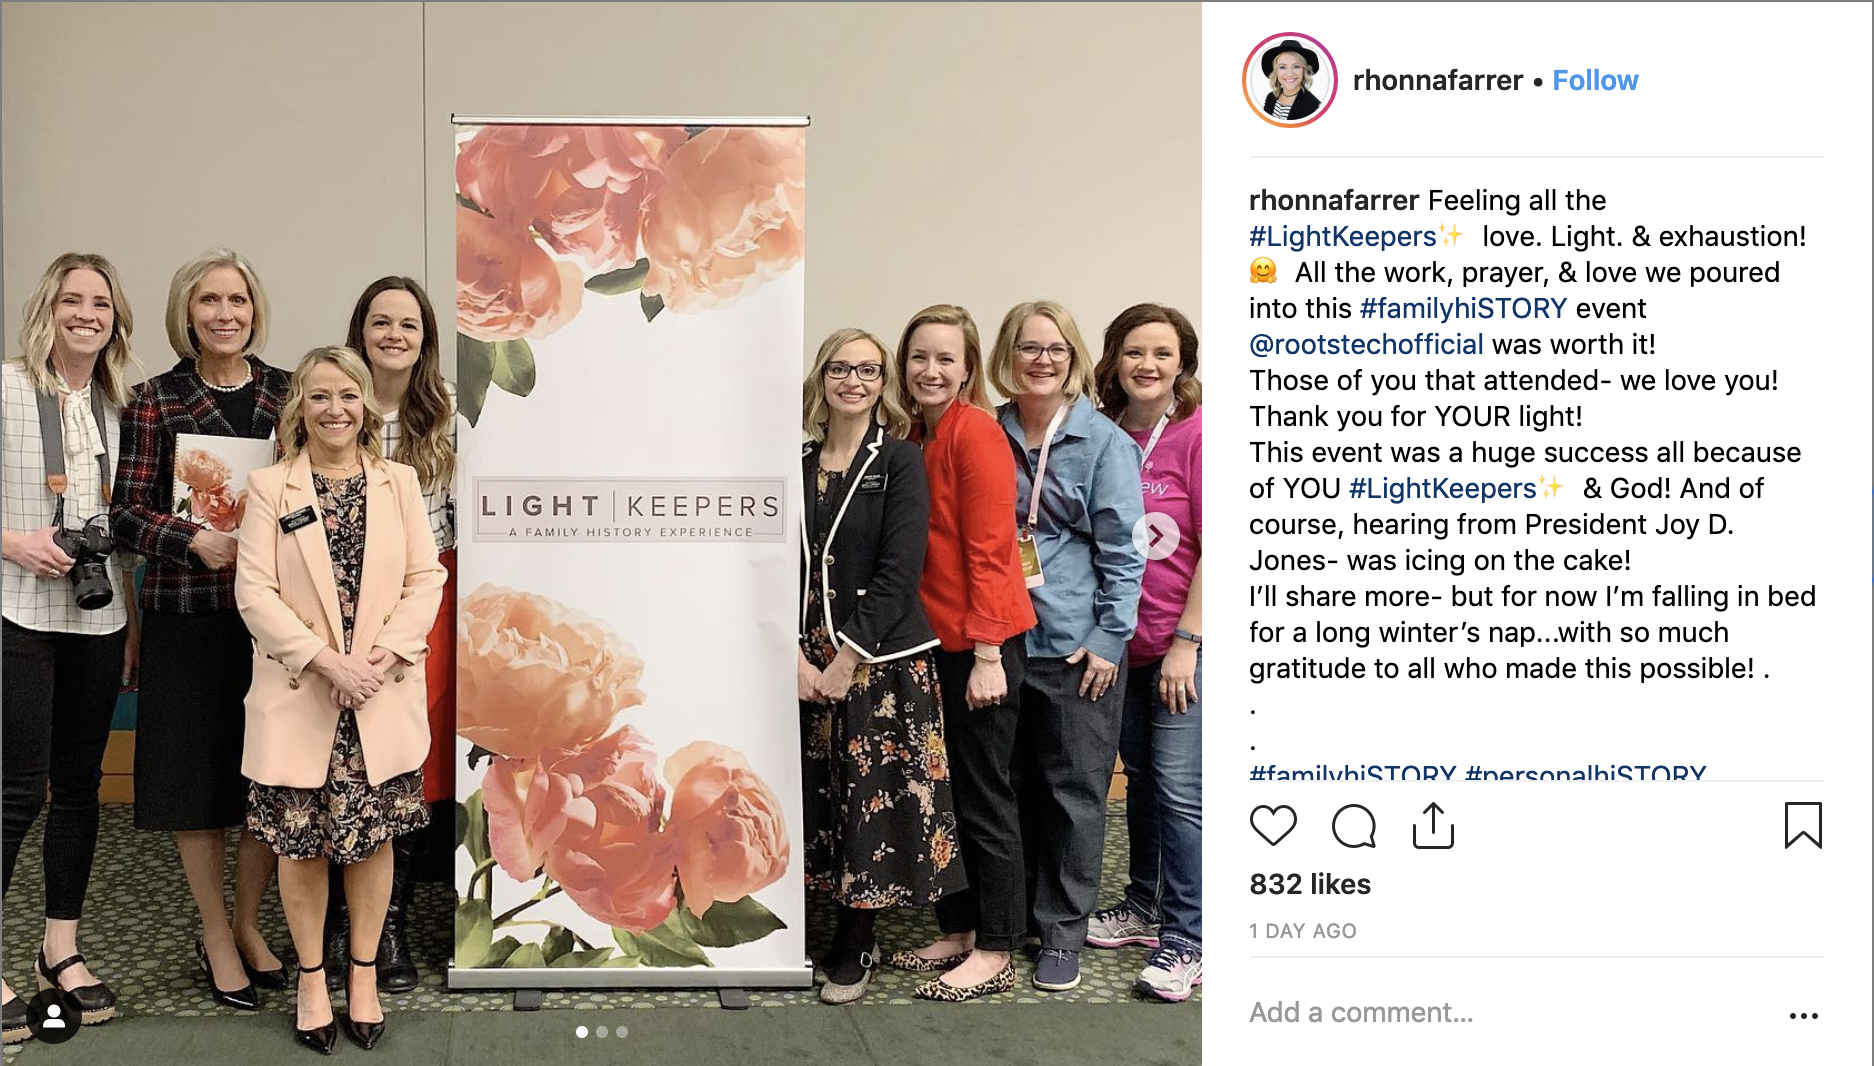 Sister Rhonna Farrer posted to Instagram following the Light Keepers workshop and RootsTech and thanked all those who participated in the event.